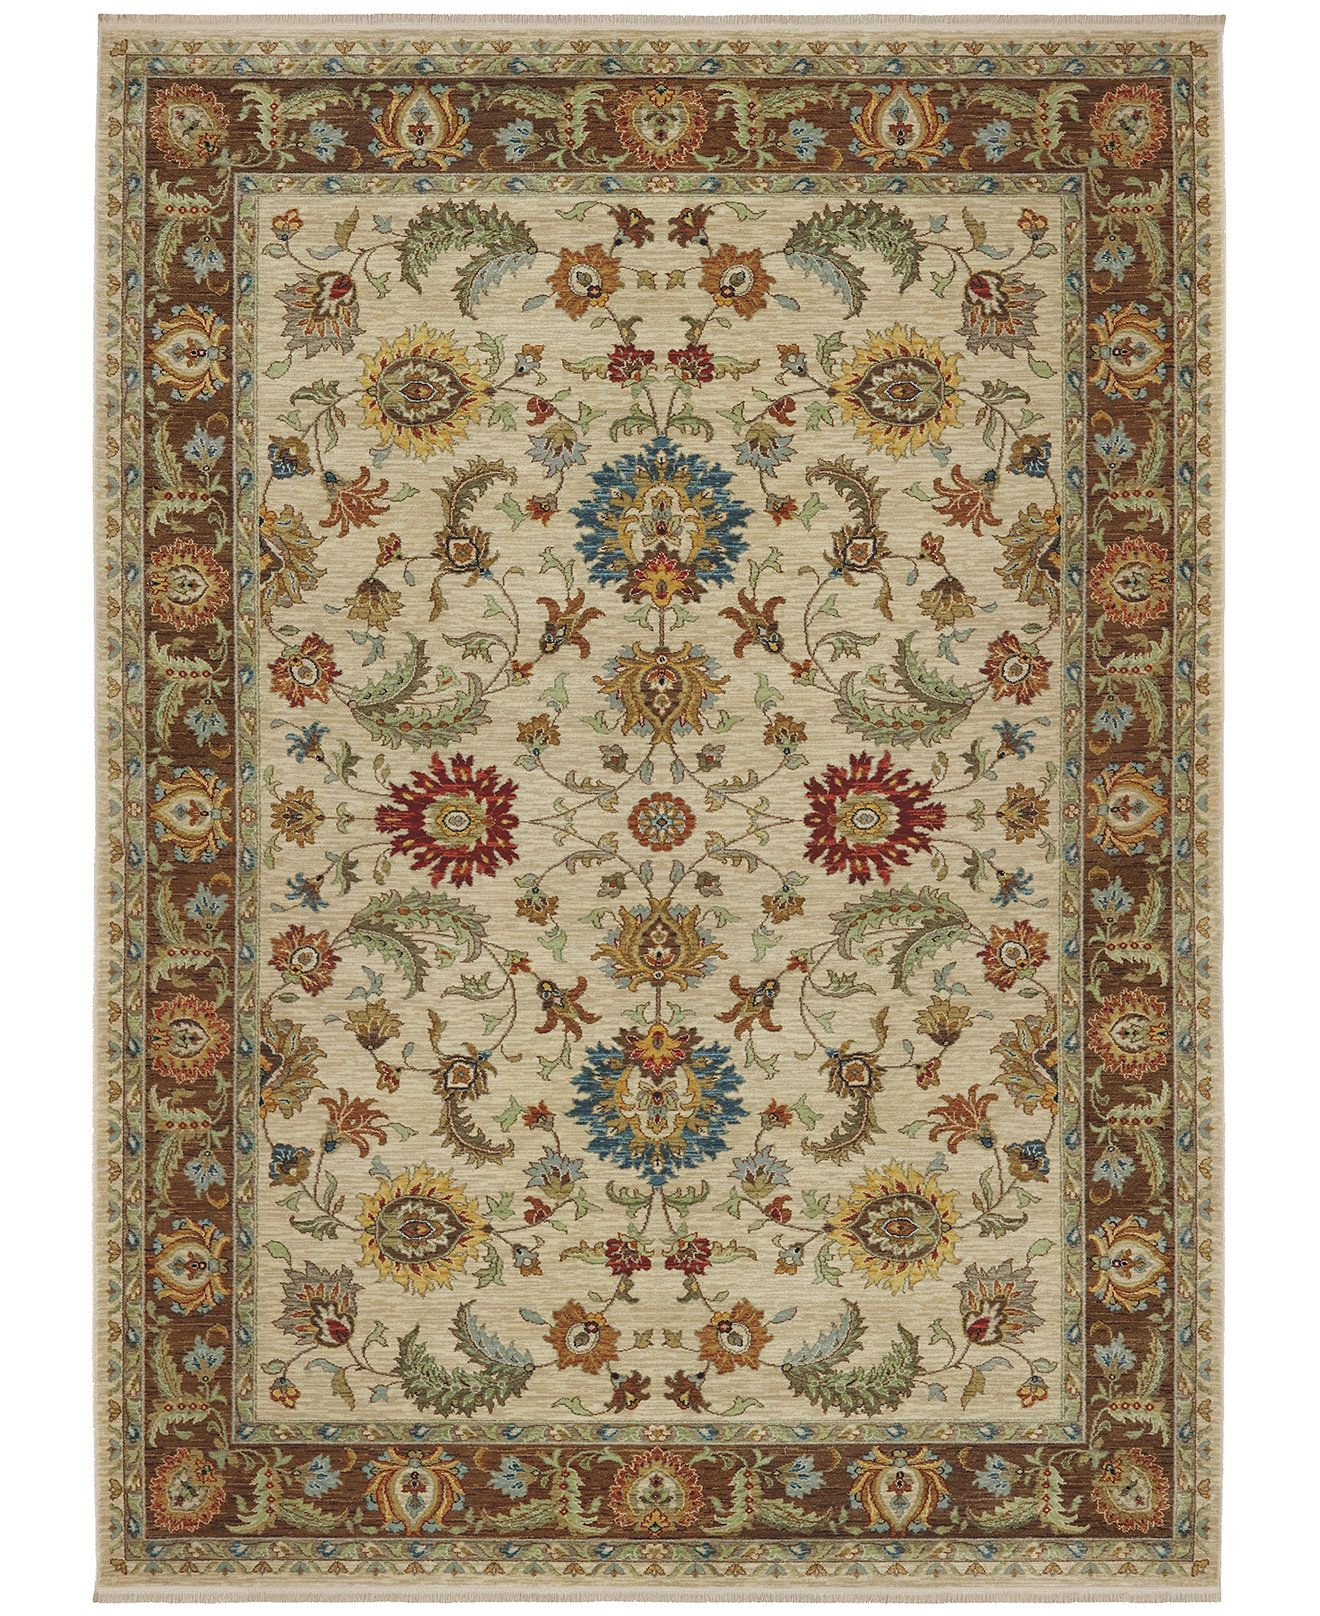 Karastan Sovereign Anastasia 10 X 14 Area Rug Rugs Rugs Macy S Karastan Rugs Rugs On Carpet Hallway Carpet Runners